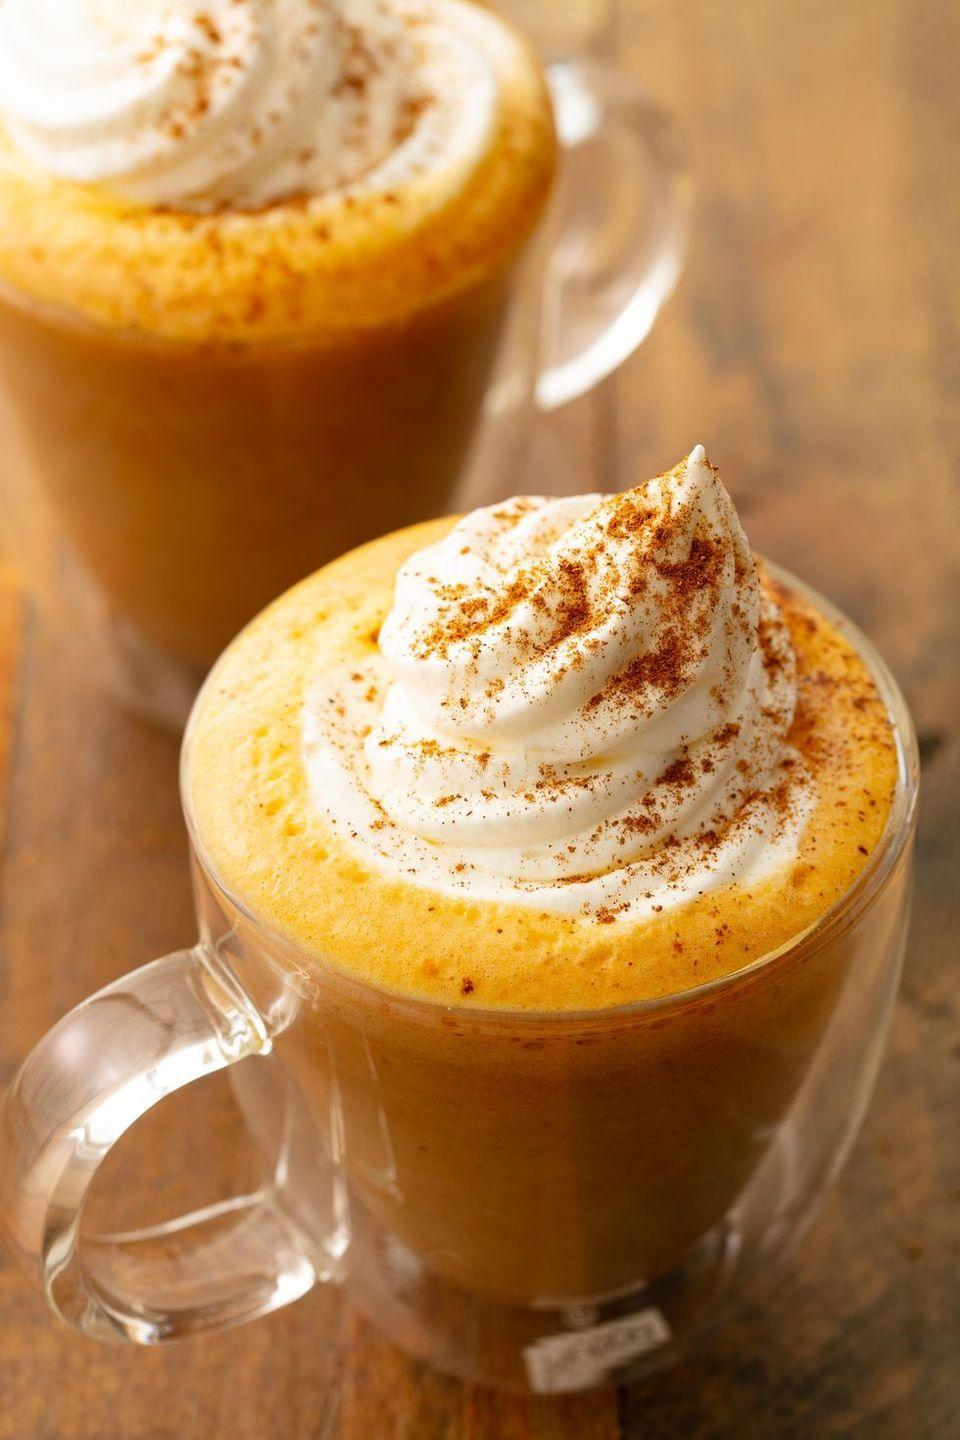 """<p>Now you can drink one any time of year!</p><p>Get the recipe from <a href=""""https://www.delish.com/cooking/recipe-ideas/a21972026/pumpkin-spice-latte-recipe/"""" rel=""""nofollow noopener"""" target=""""_blank"""" data-ylk=""""slk:Delish"""" class=""""link rapid-noclick-resp"""">Delish</a>.</p>"""